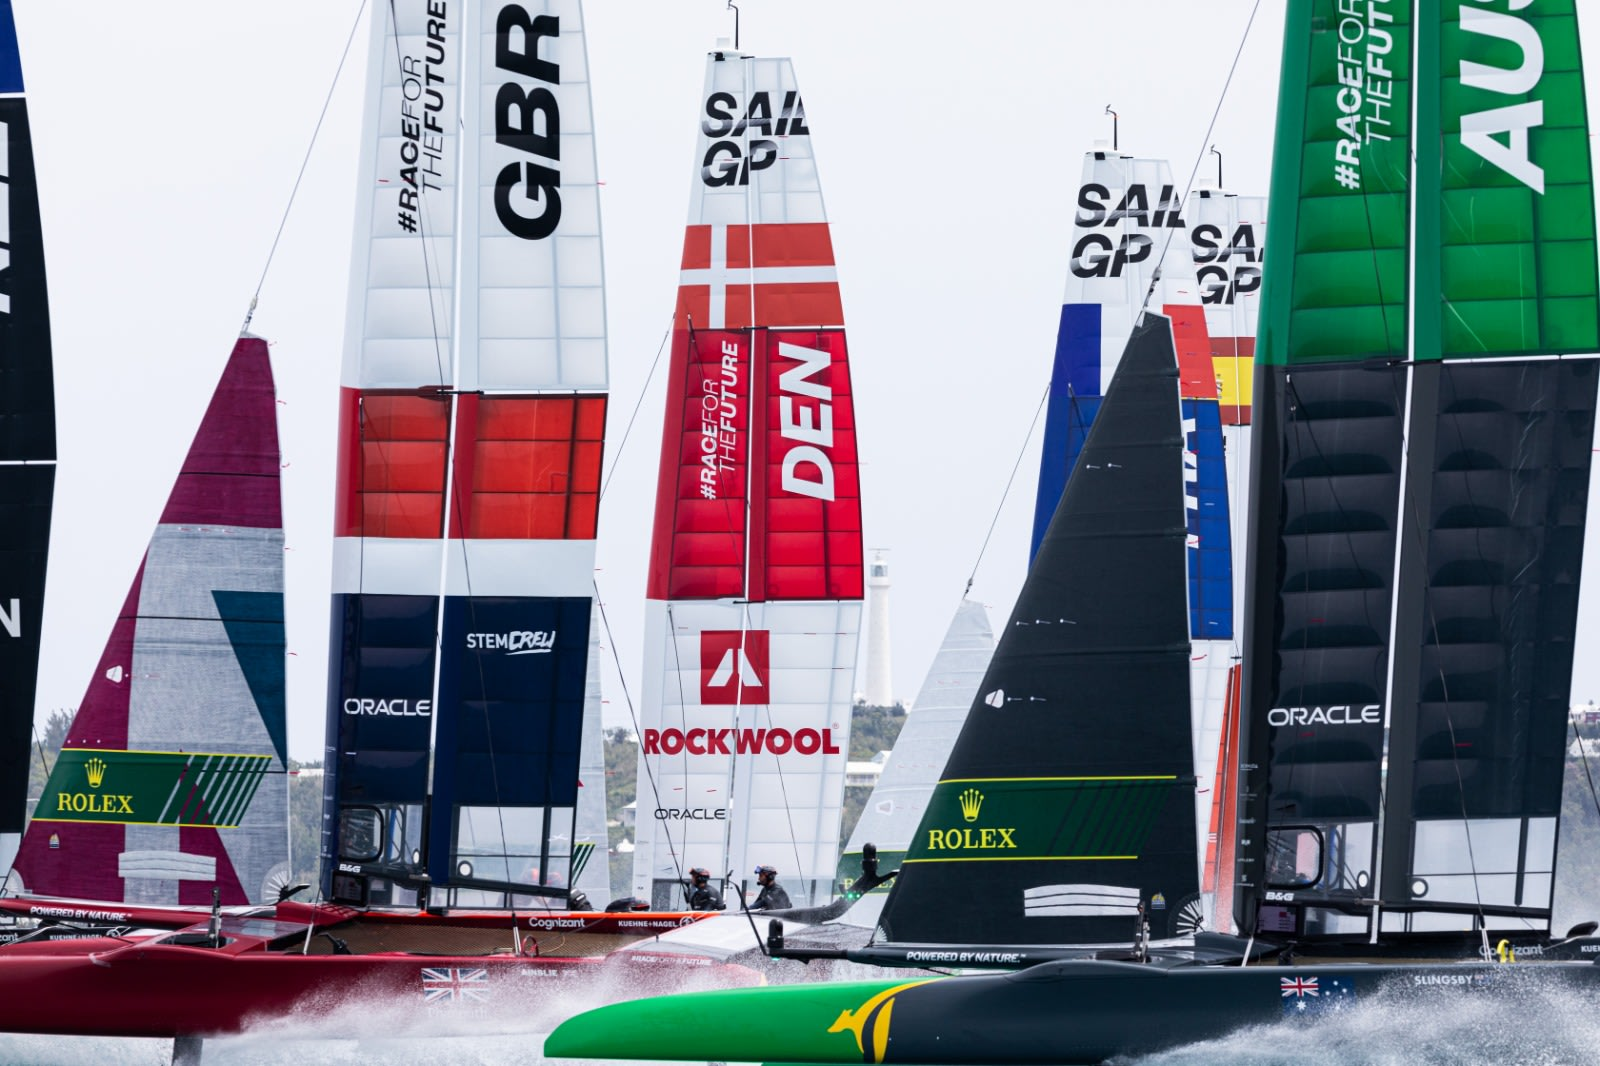 Denmark SailGP Team claims sixth in dramatic weekend at Bermuda Sail Grand Prix